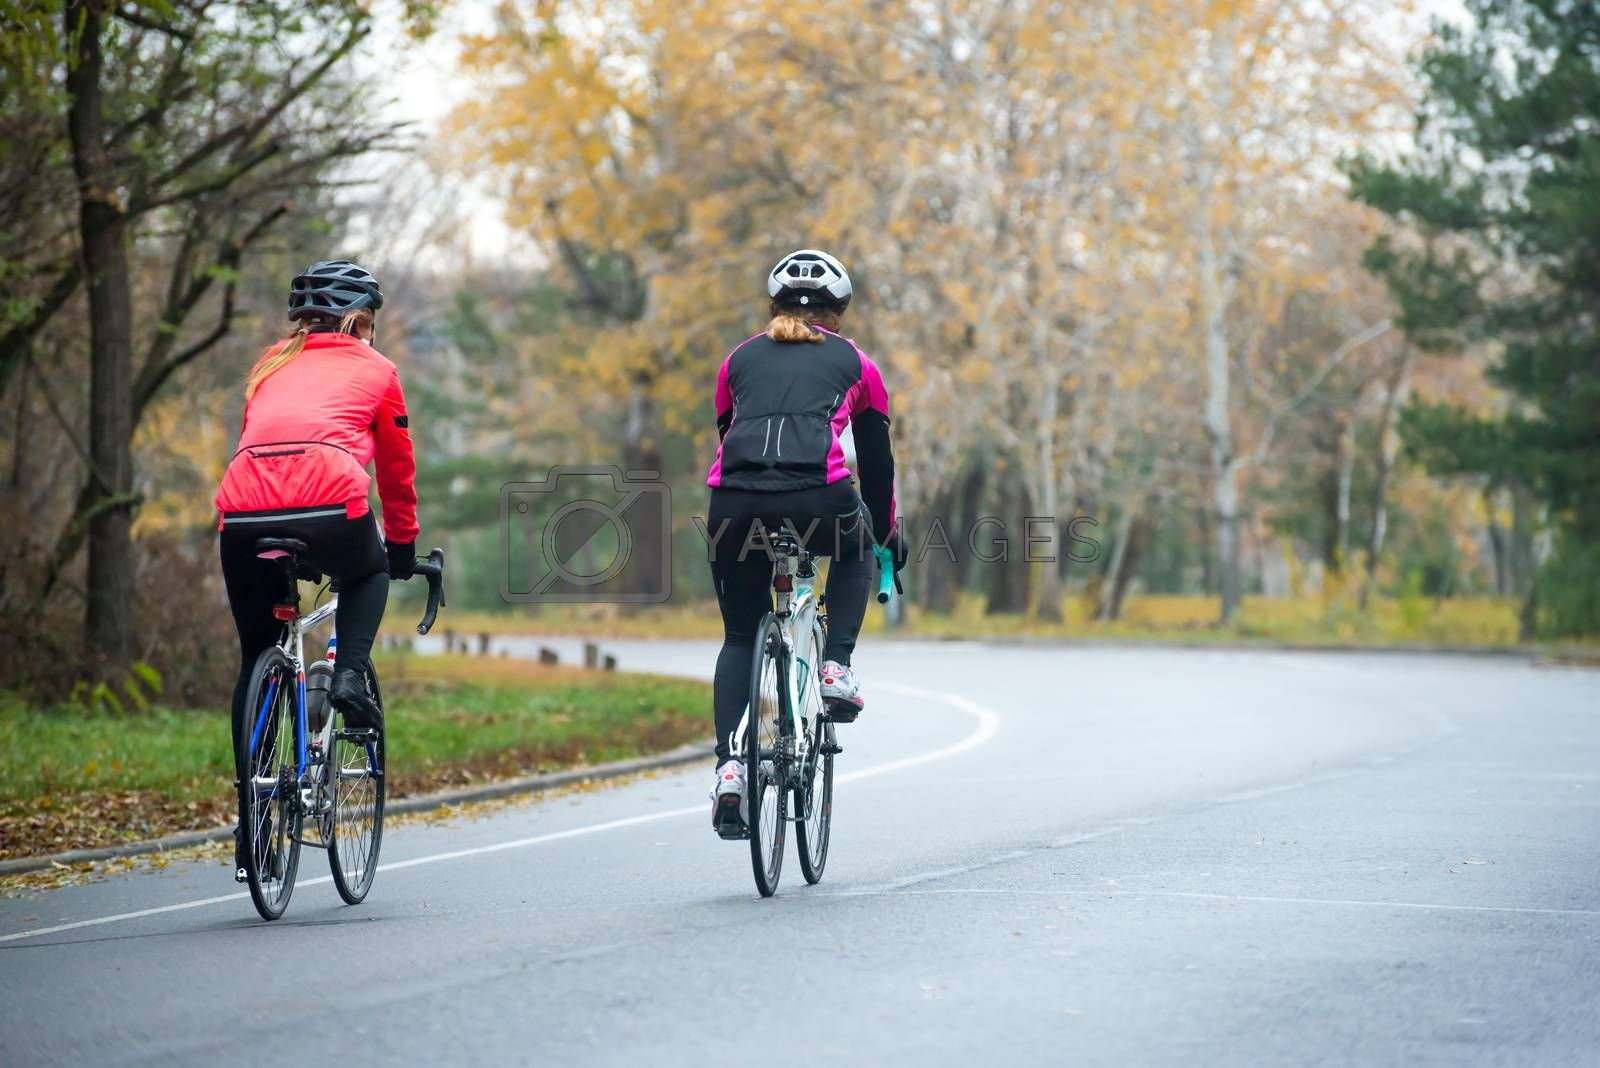 Two Young Female Cyclists Riding Road Bicycles in the Park in the Cold Autumn Morning. Healthy Lifestyle. by maxpro